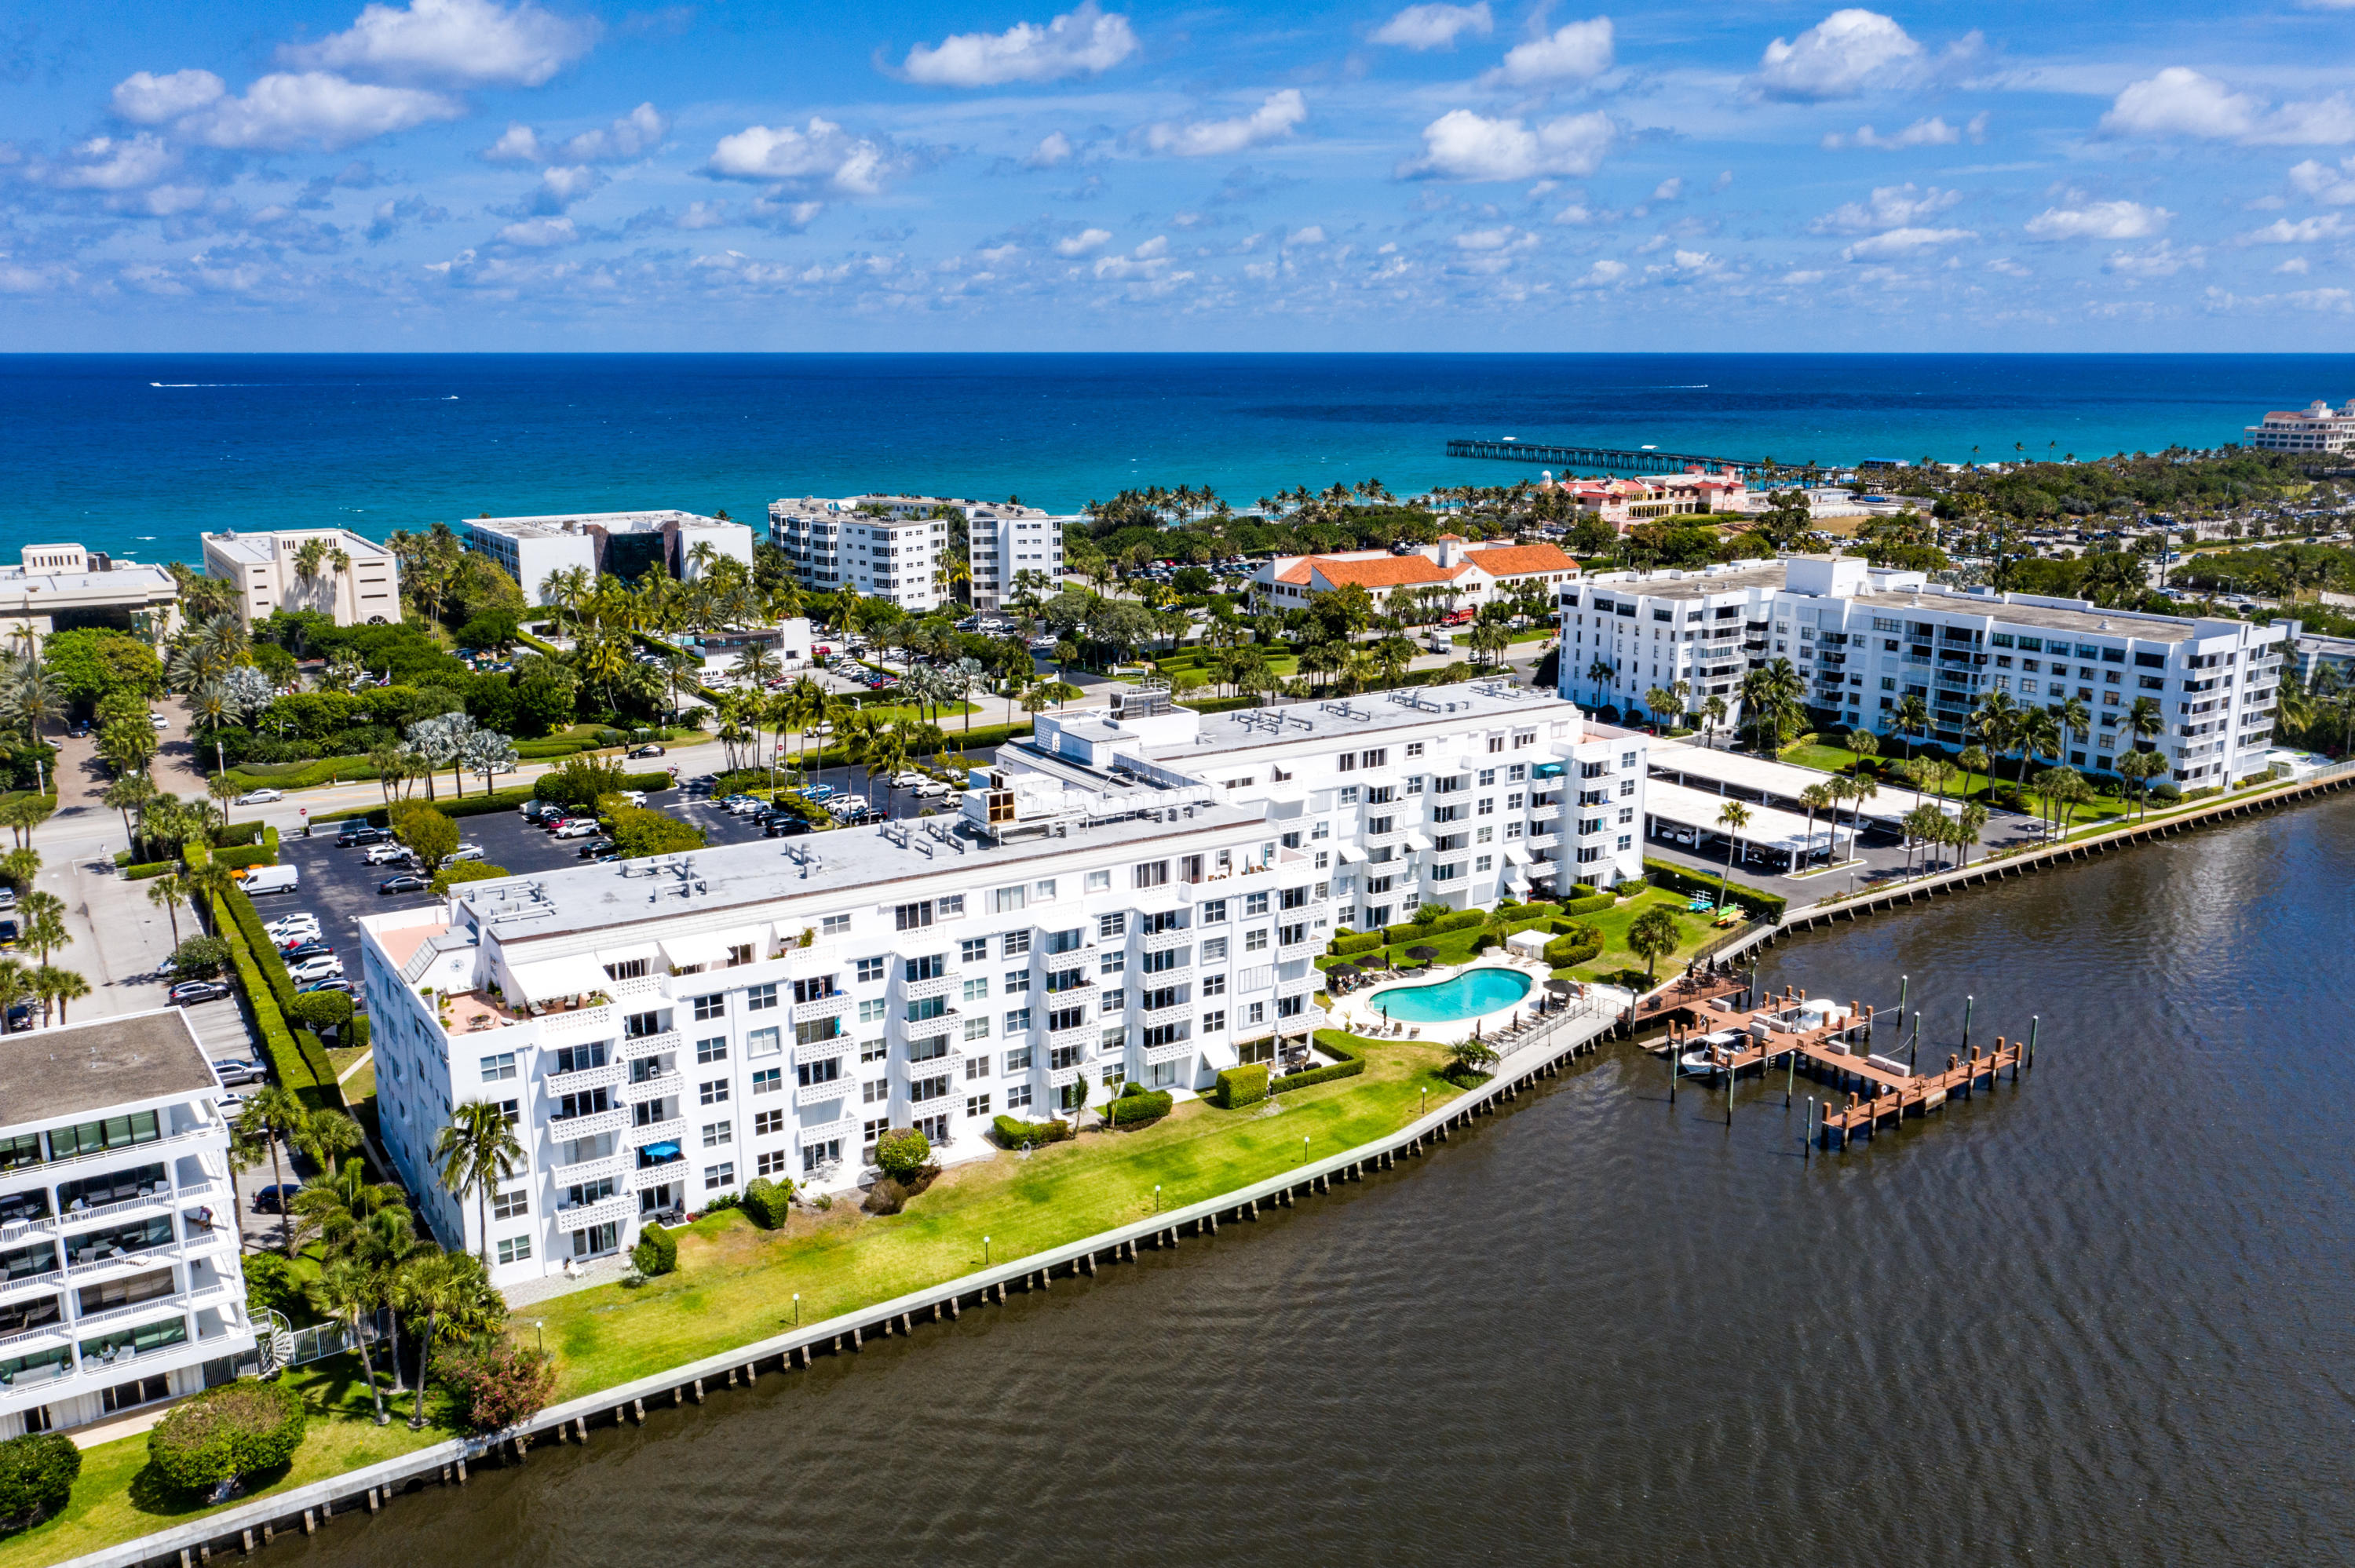 Beautiful Intracoastal waterfront corner unit in Palm Beach. Updated bath with impact resistant glass throughout.  Incredible value for Palm Beach Island!  Newer water heater and A/C.  Royal Saxon features a waterfront pool area directly on the Intracoastal Waterway with lounge chairs and a sundeck, 24/7 security, fitness room, social/club room, barbecue grills, and boat slips and kayak storage!  Just across the street from the beach, Four Seasons, restaurants and shops just steps from your front door!  All ages welcome, but no pets. See attached documents for coop rules and regs. All assessments for balconies and exterior building renovations have been paid for by the seller; move-in ready!  Maintenance fees include cable, water, exterior insurance, pest control, and amenities Glimpses of the Ocean from the Balcony.